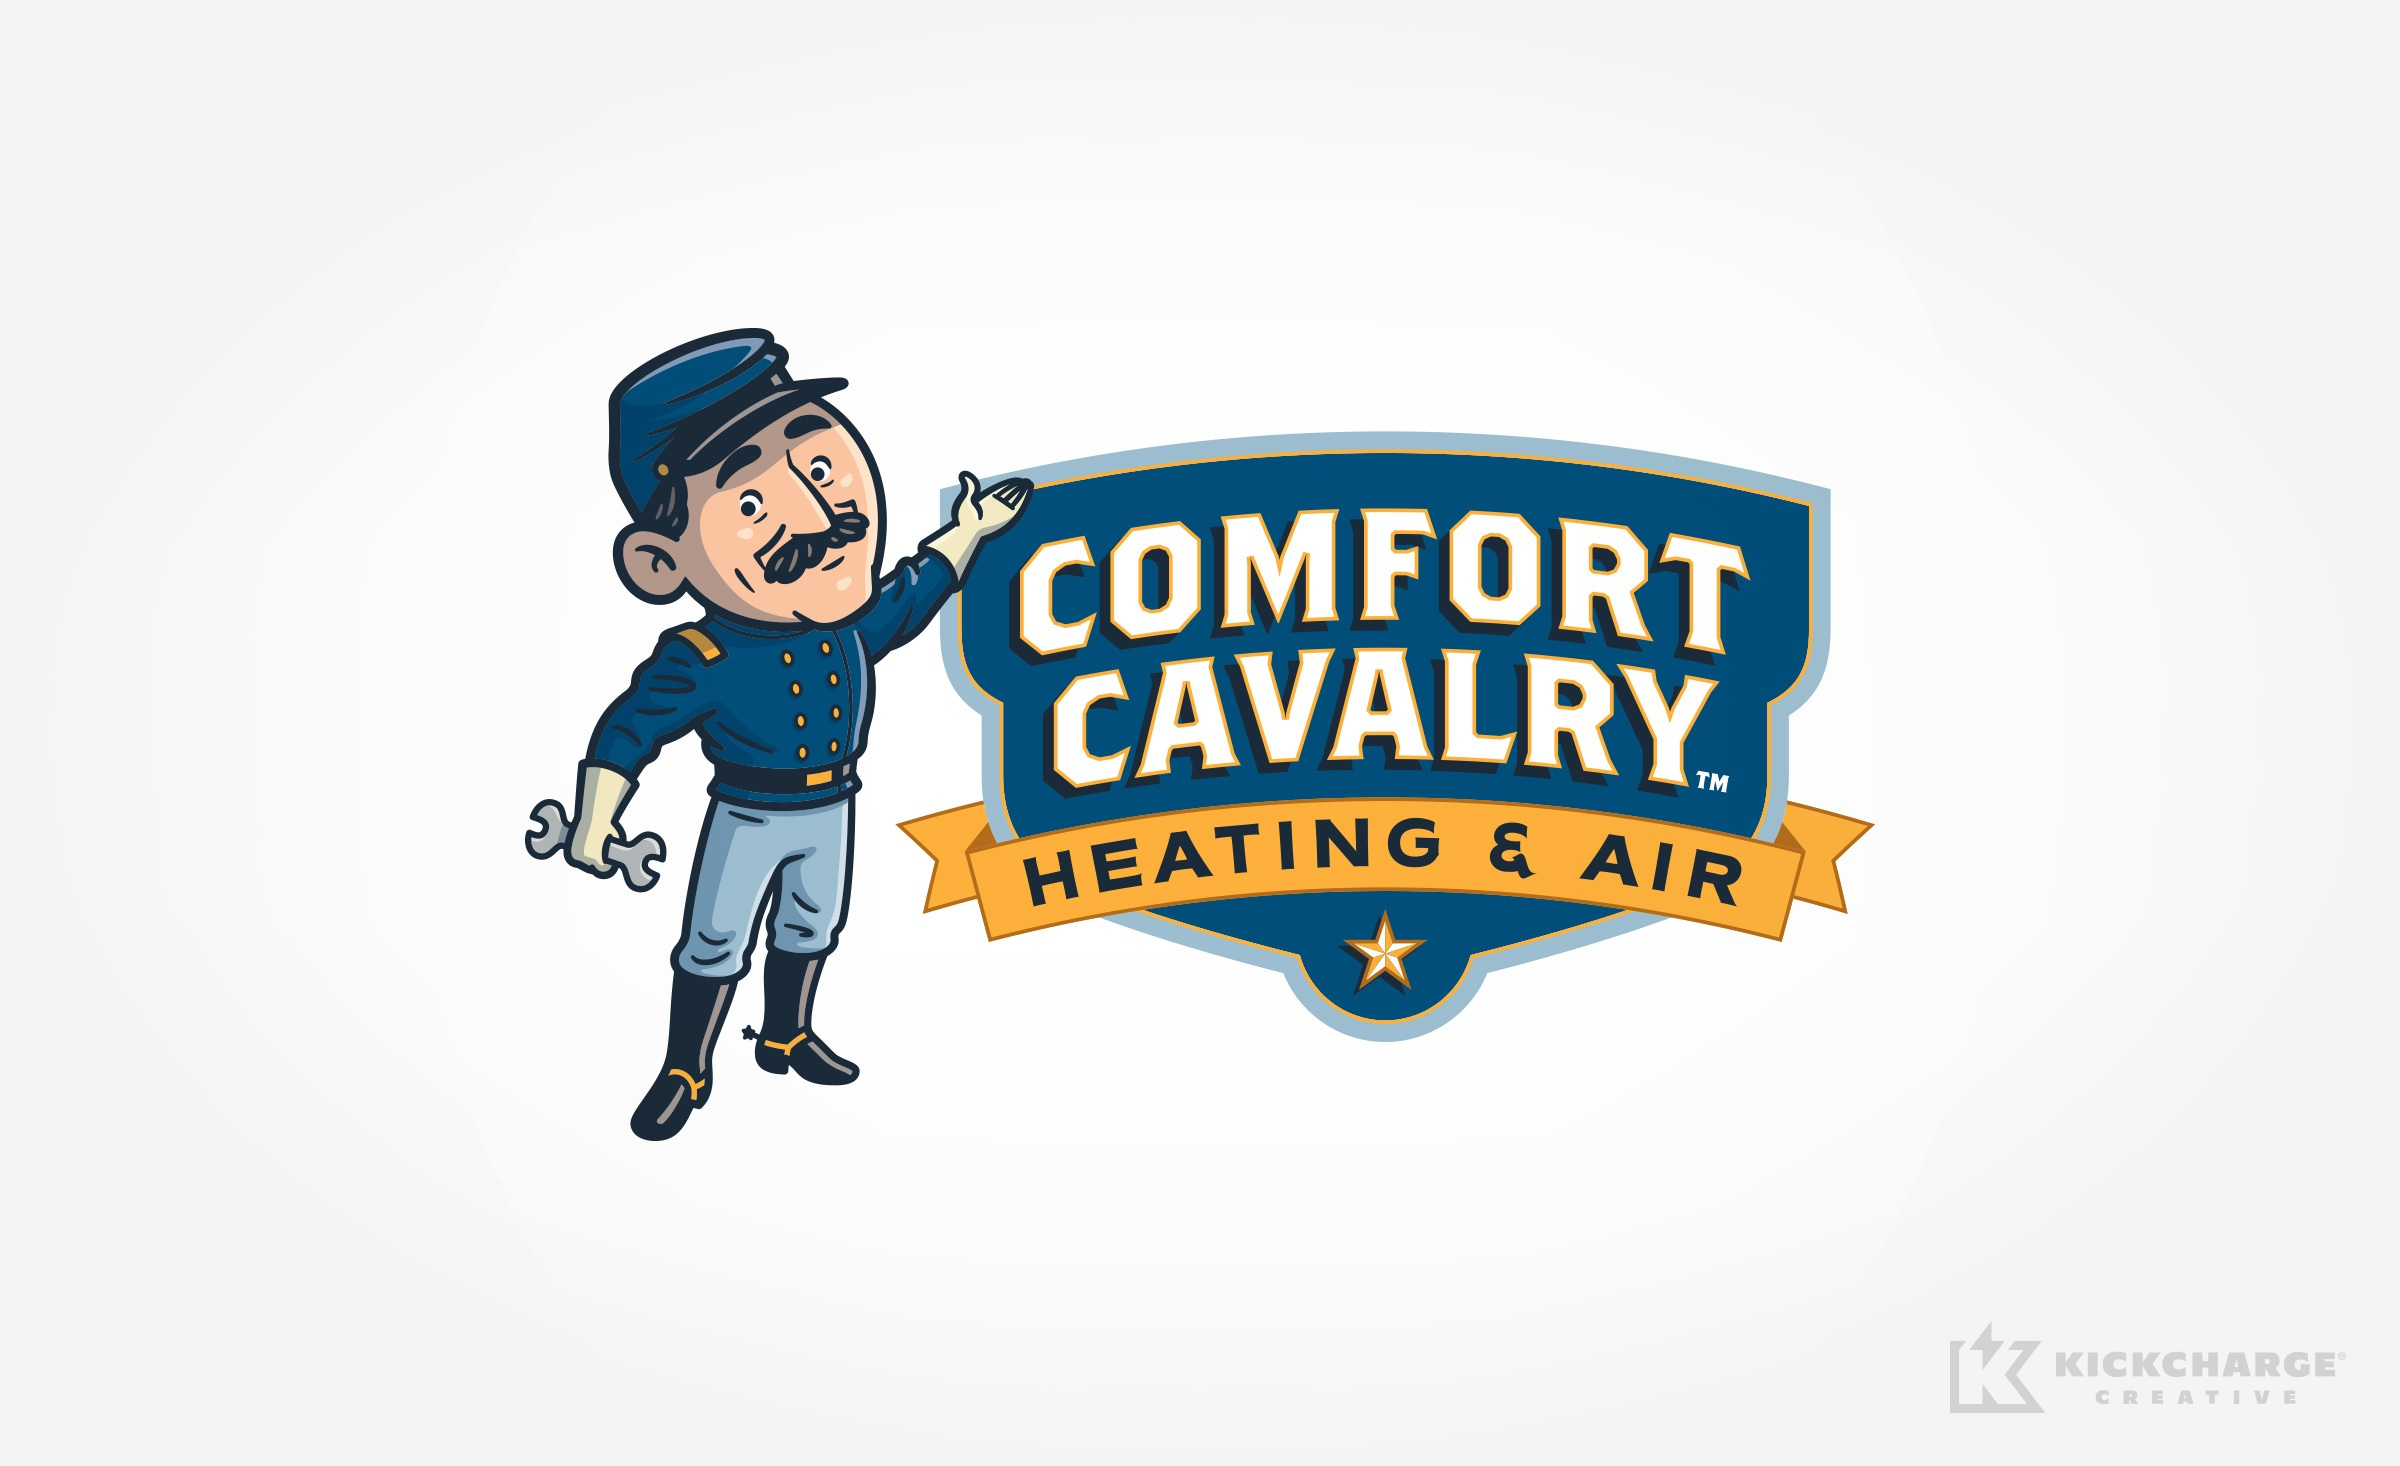 hvac logo for Comfort Cavalry